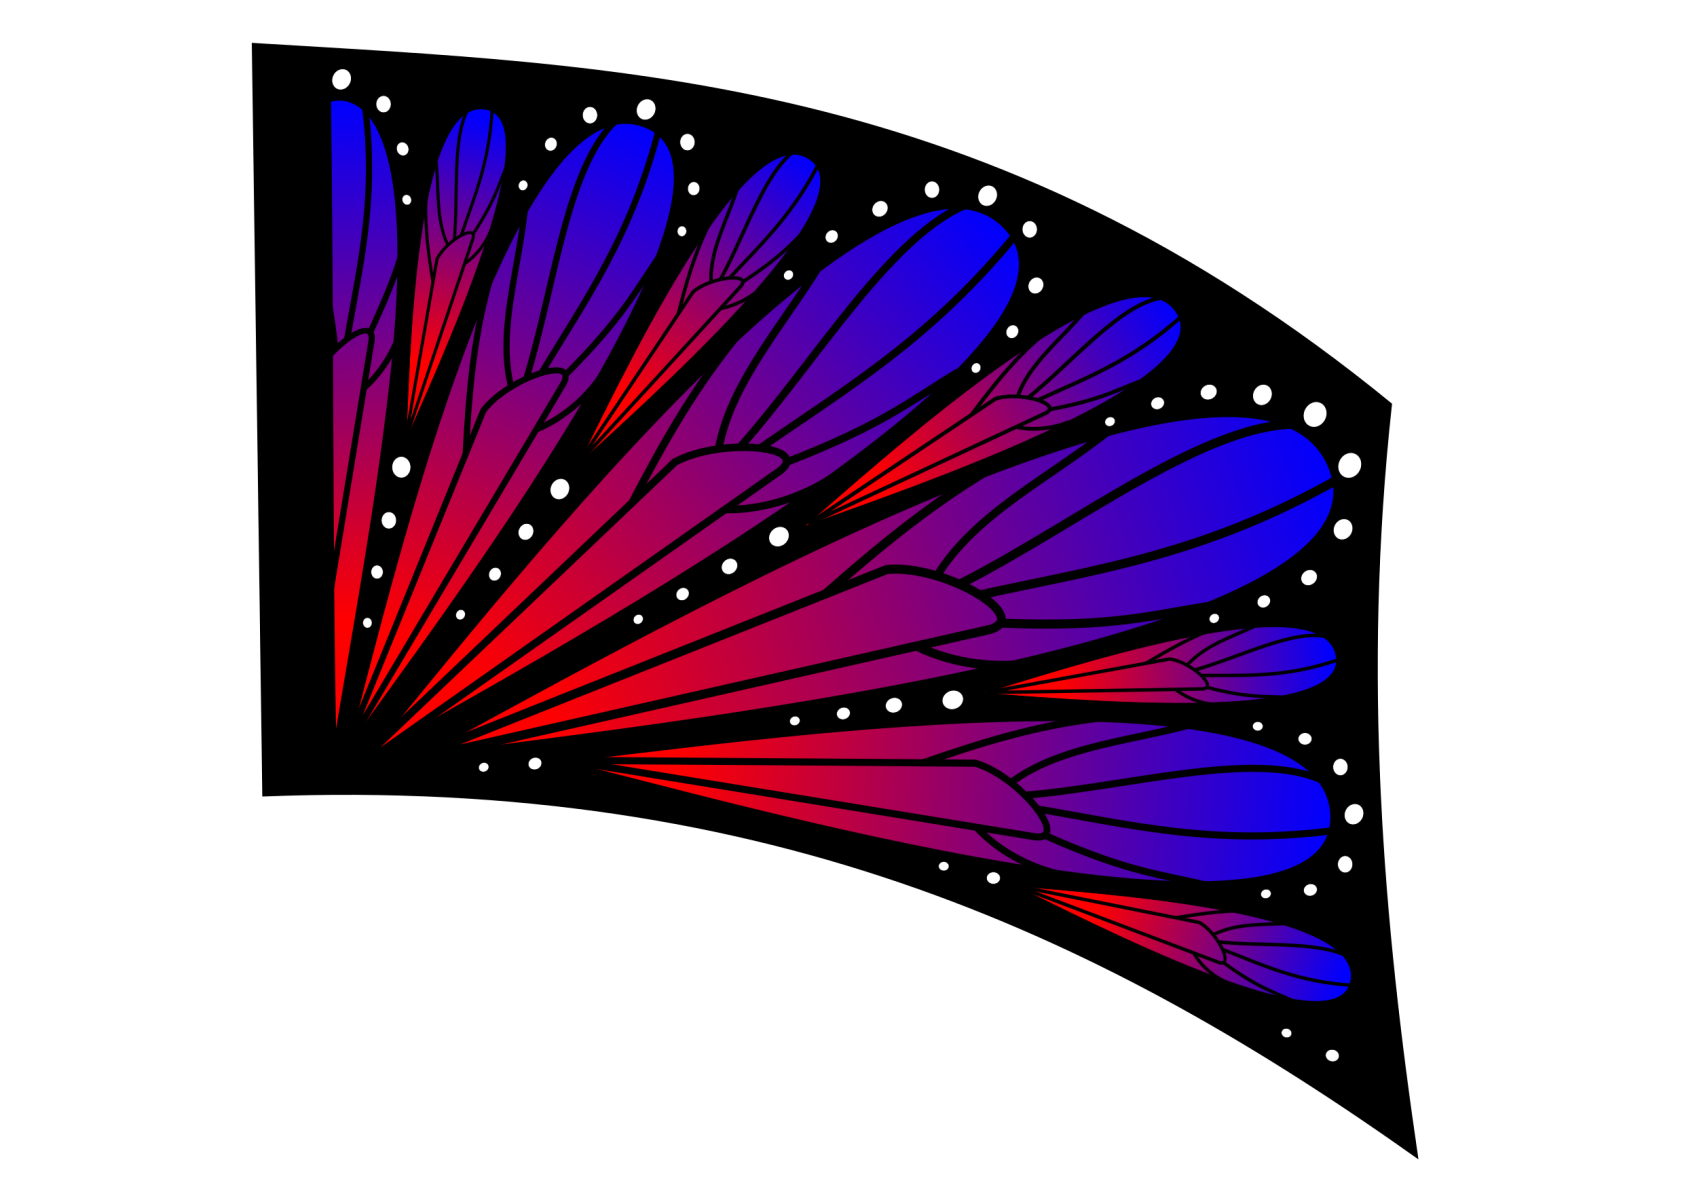 070501s - 36x54 Standard Red-Blue Ombre Butterfly